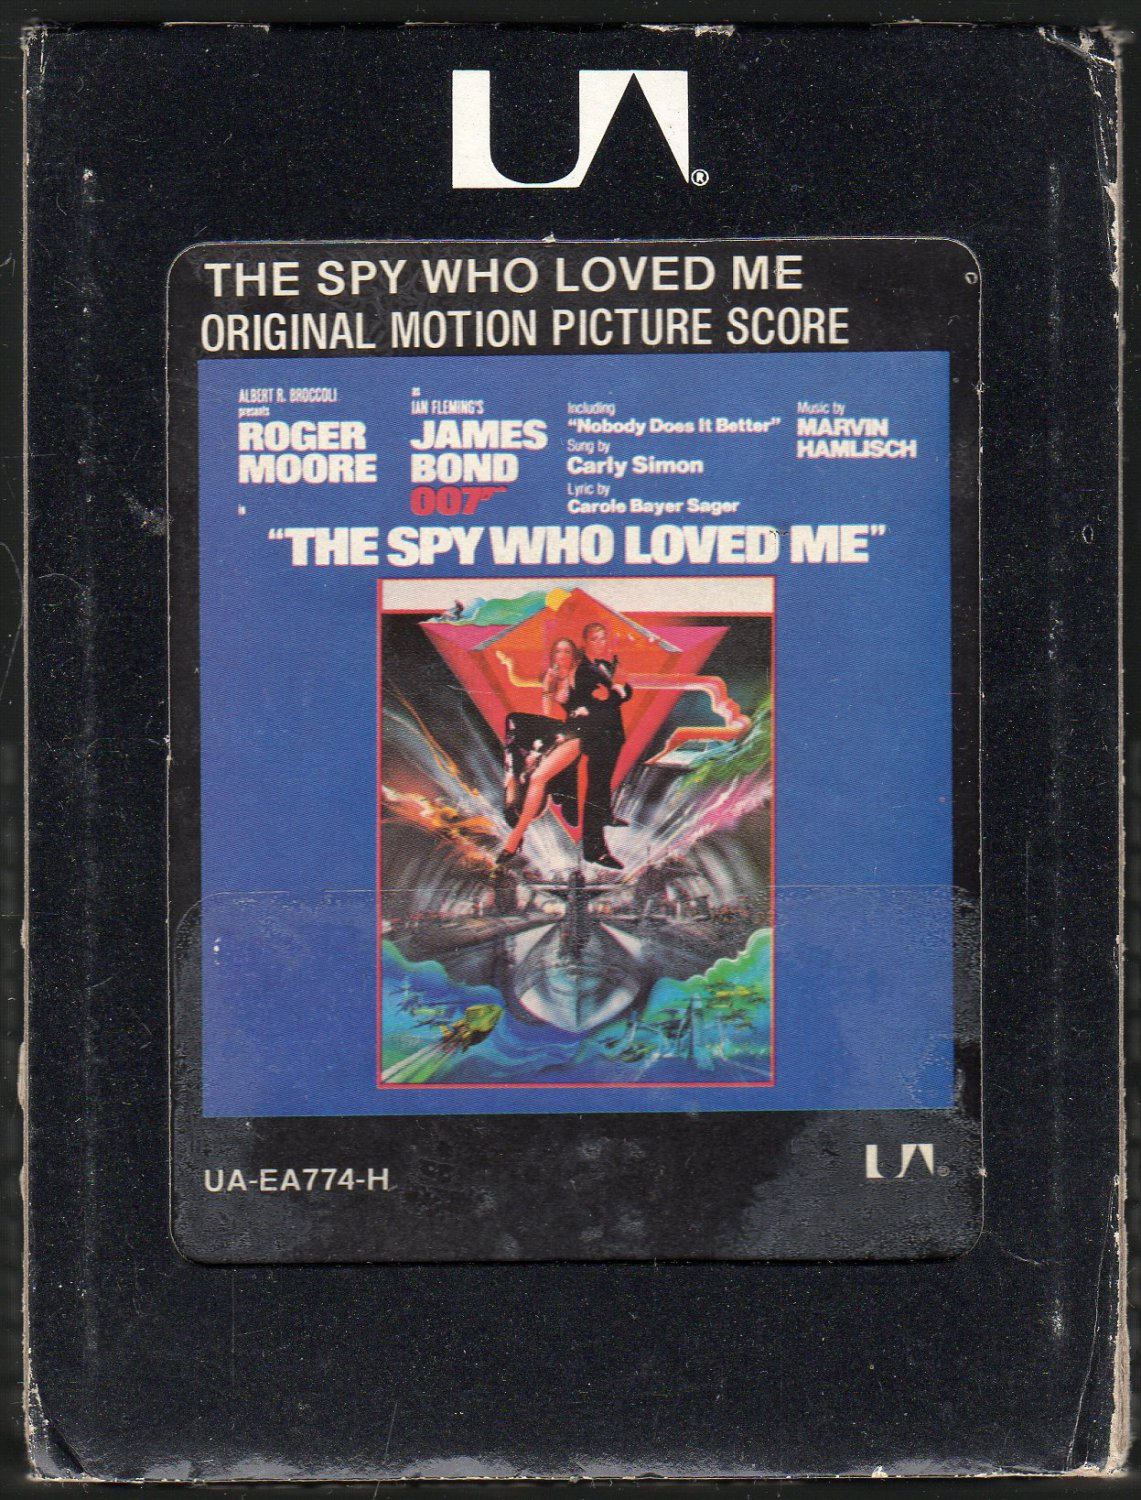 The Spy Who Loved Me - Original Picture Score 1977 UA A18F 8-TRACK TAPE